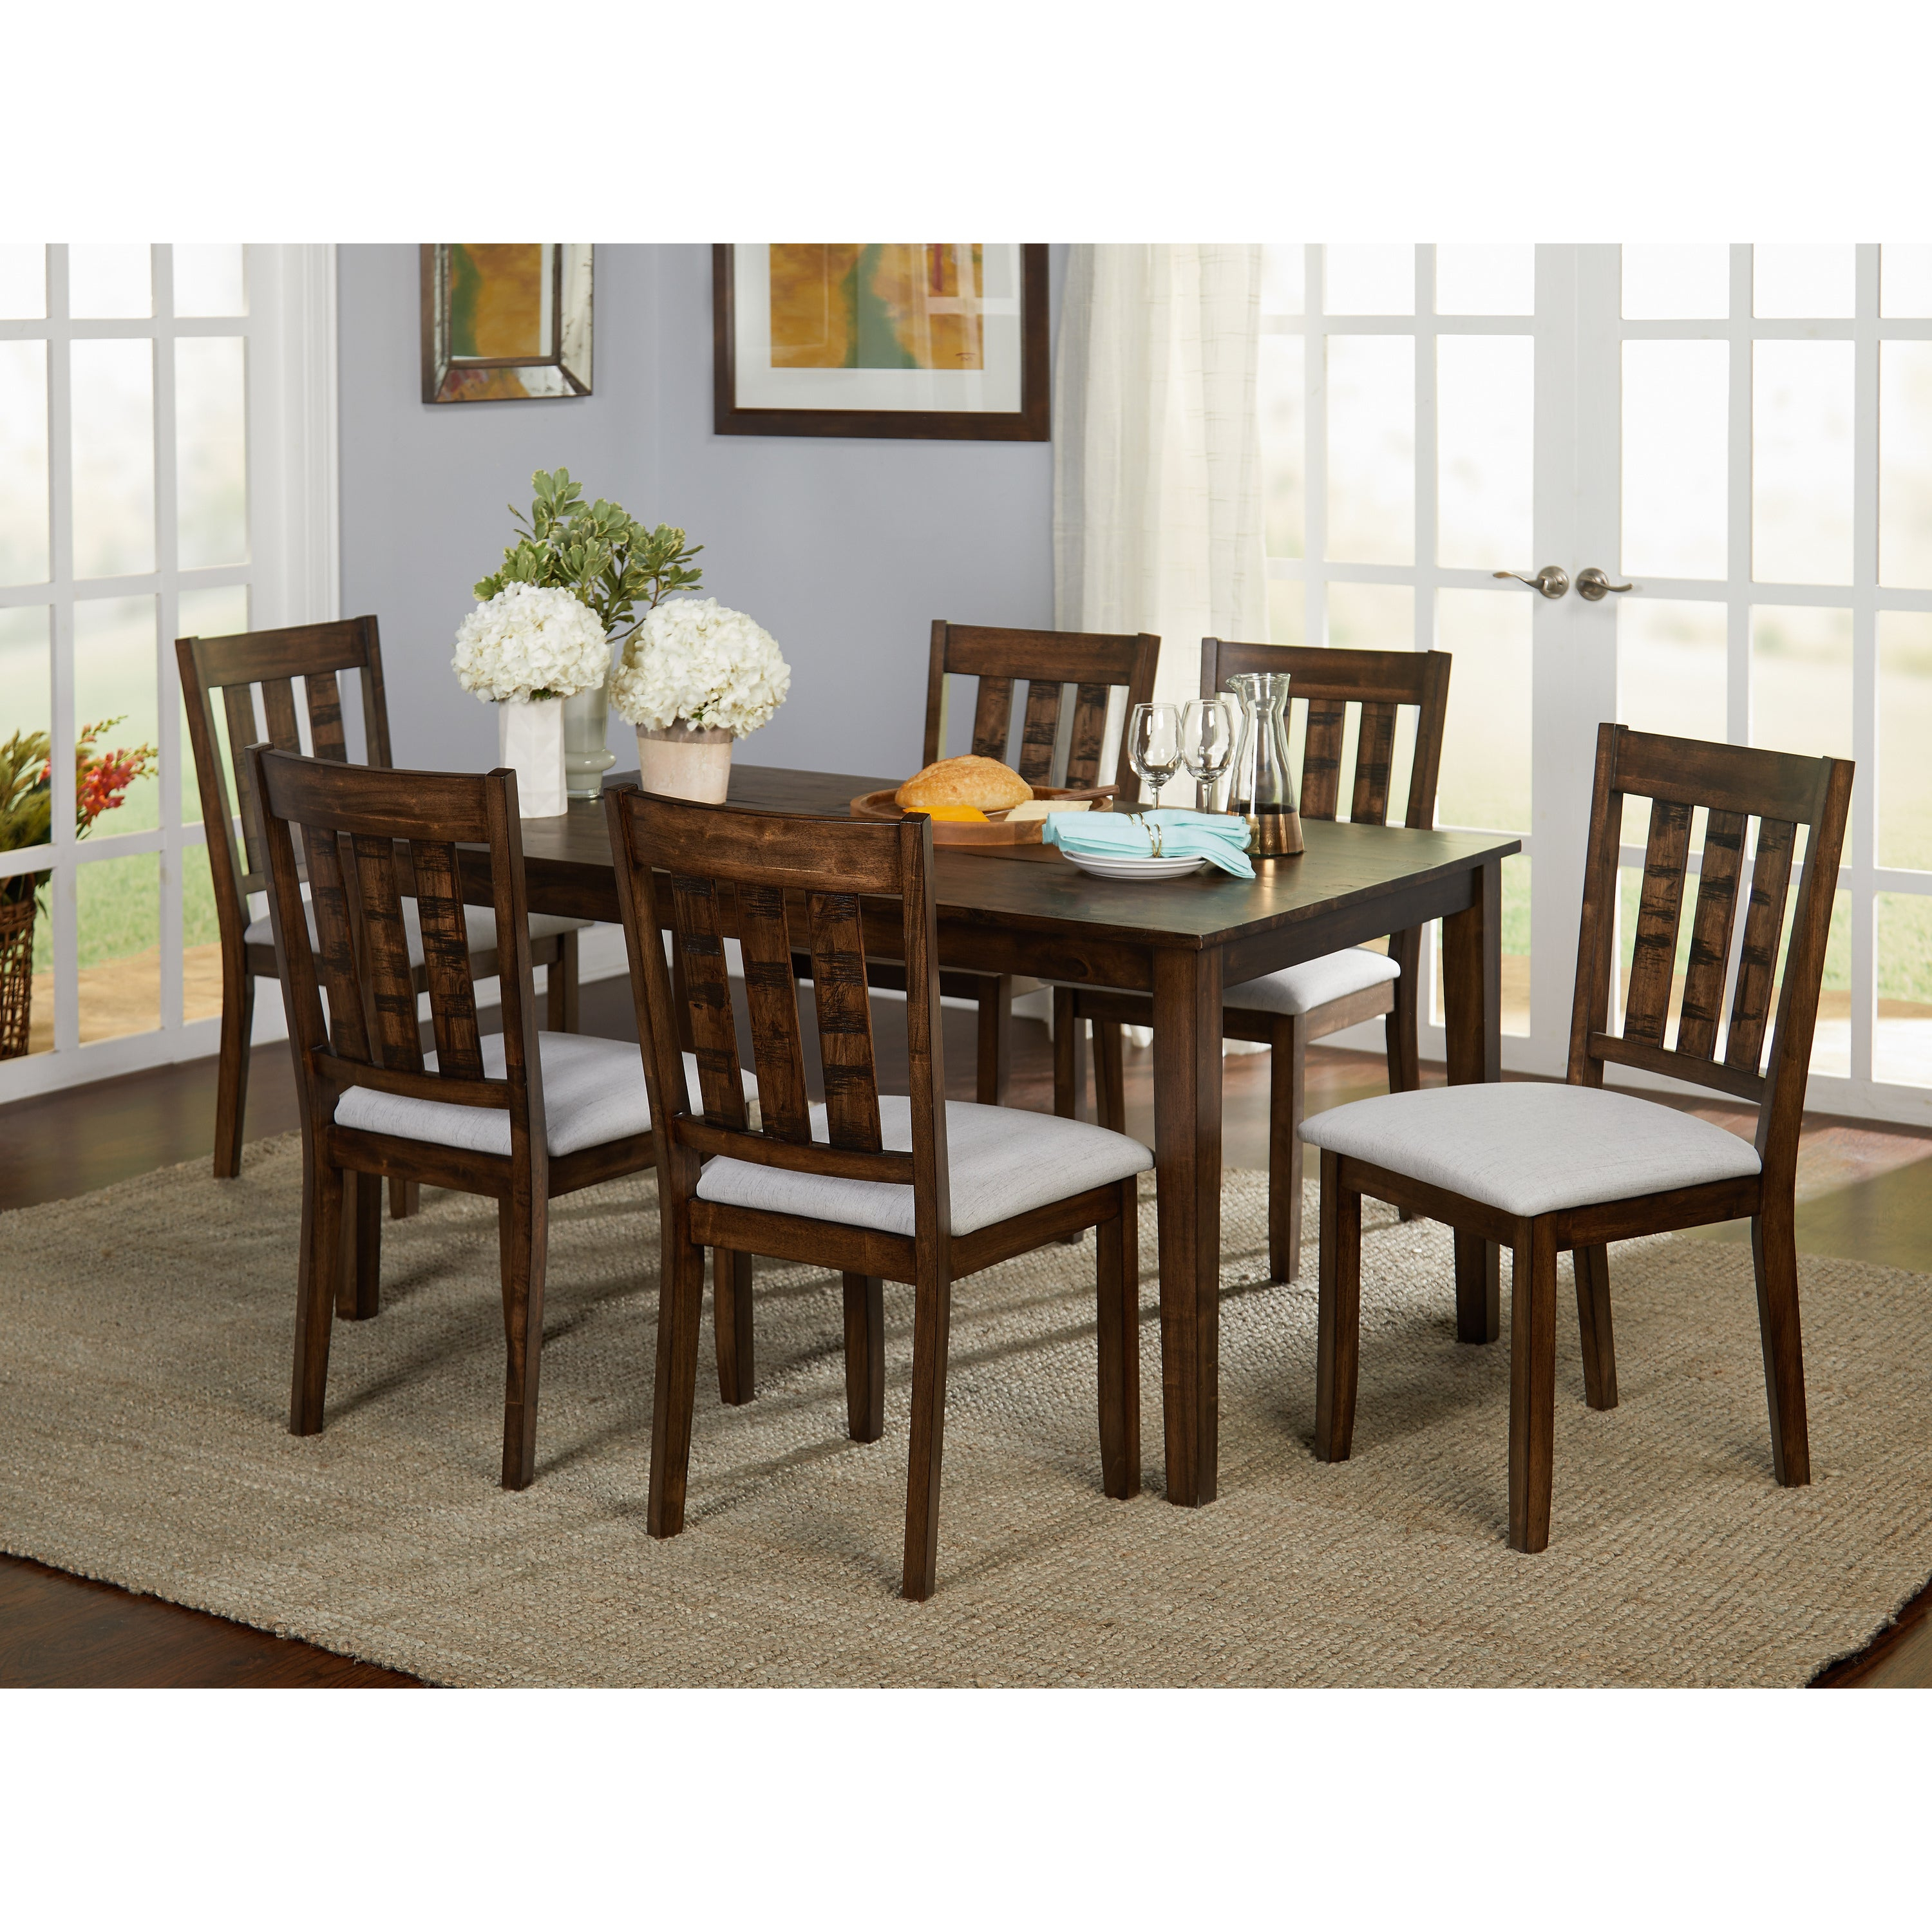 Buy Kitchen & Dining Room Tables Online At Overstock | Our Best For Most Current North Reading 5 Piece Dining Table Sets (View 6 of 20)